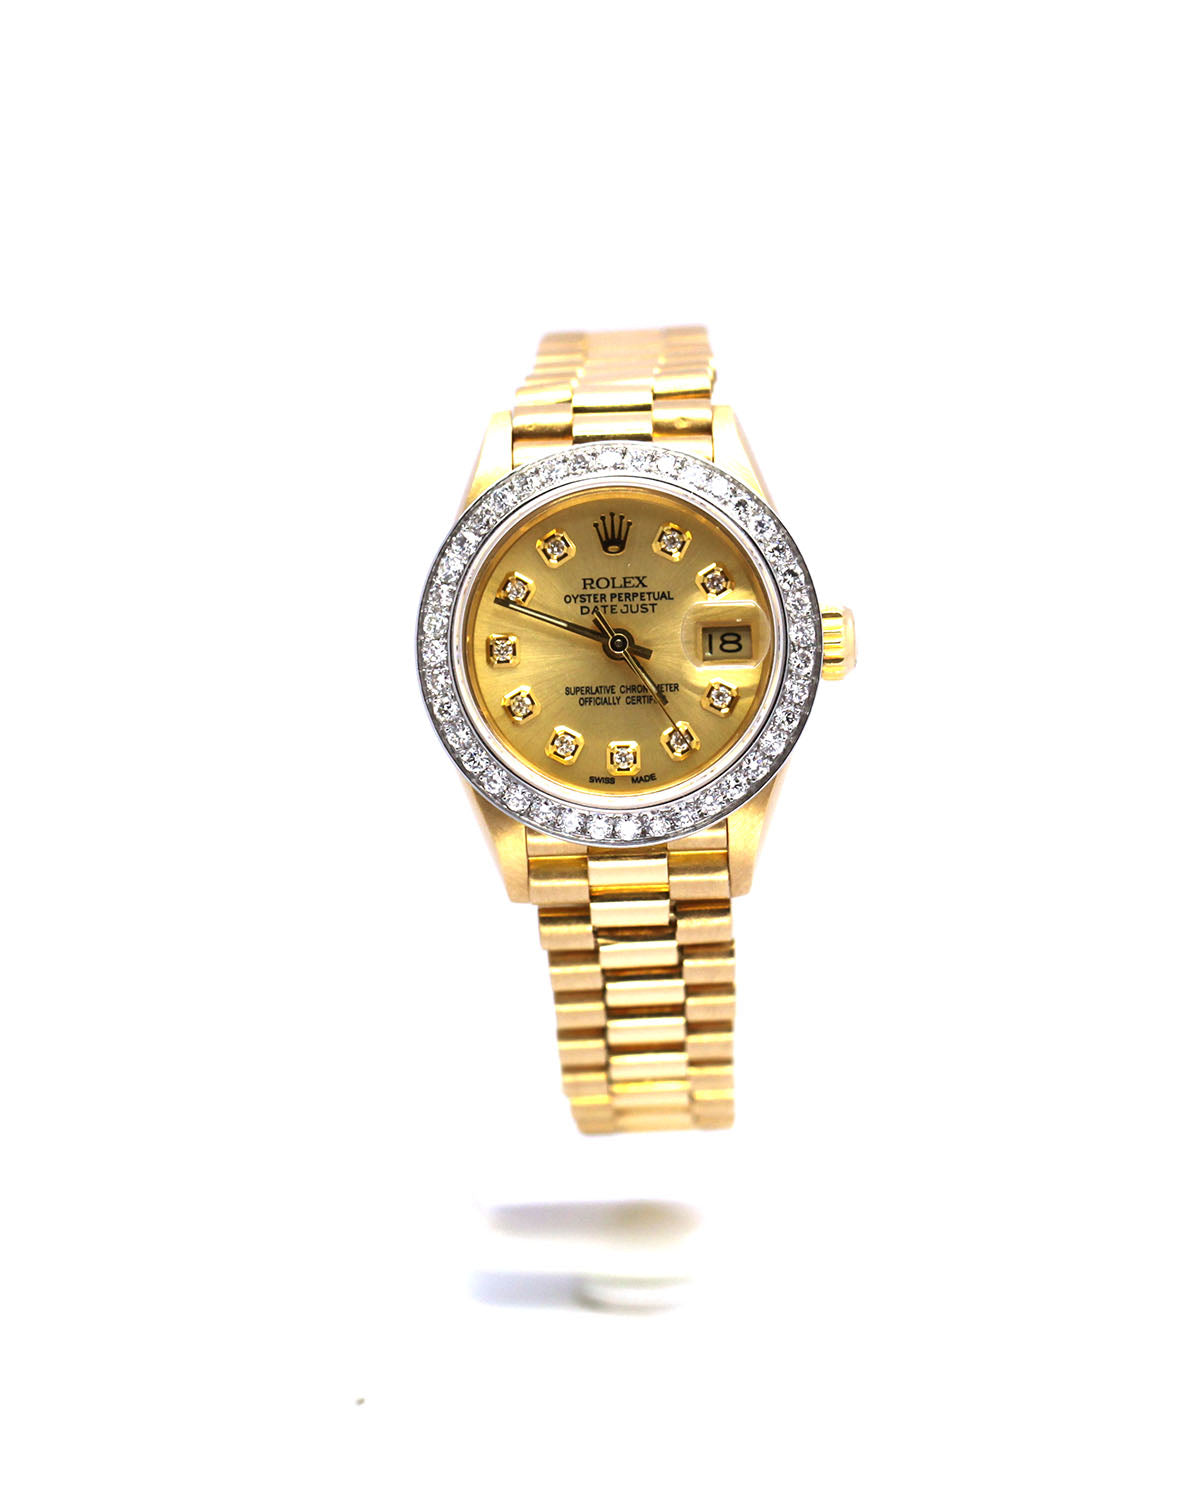 LADIES ROLEX DATEJUST 69178 PRESIDENT CHAMPAGNE DIAL DIAMOND BEZEL 26MM